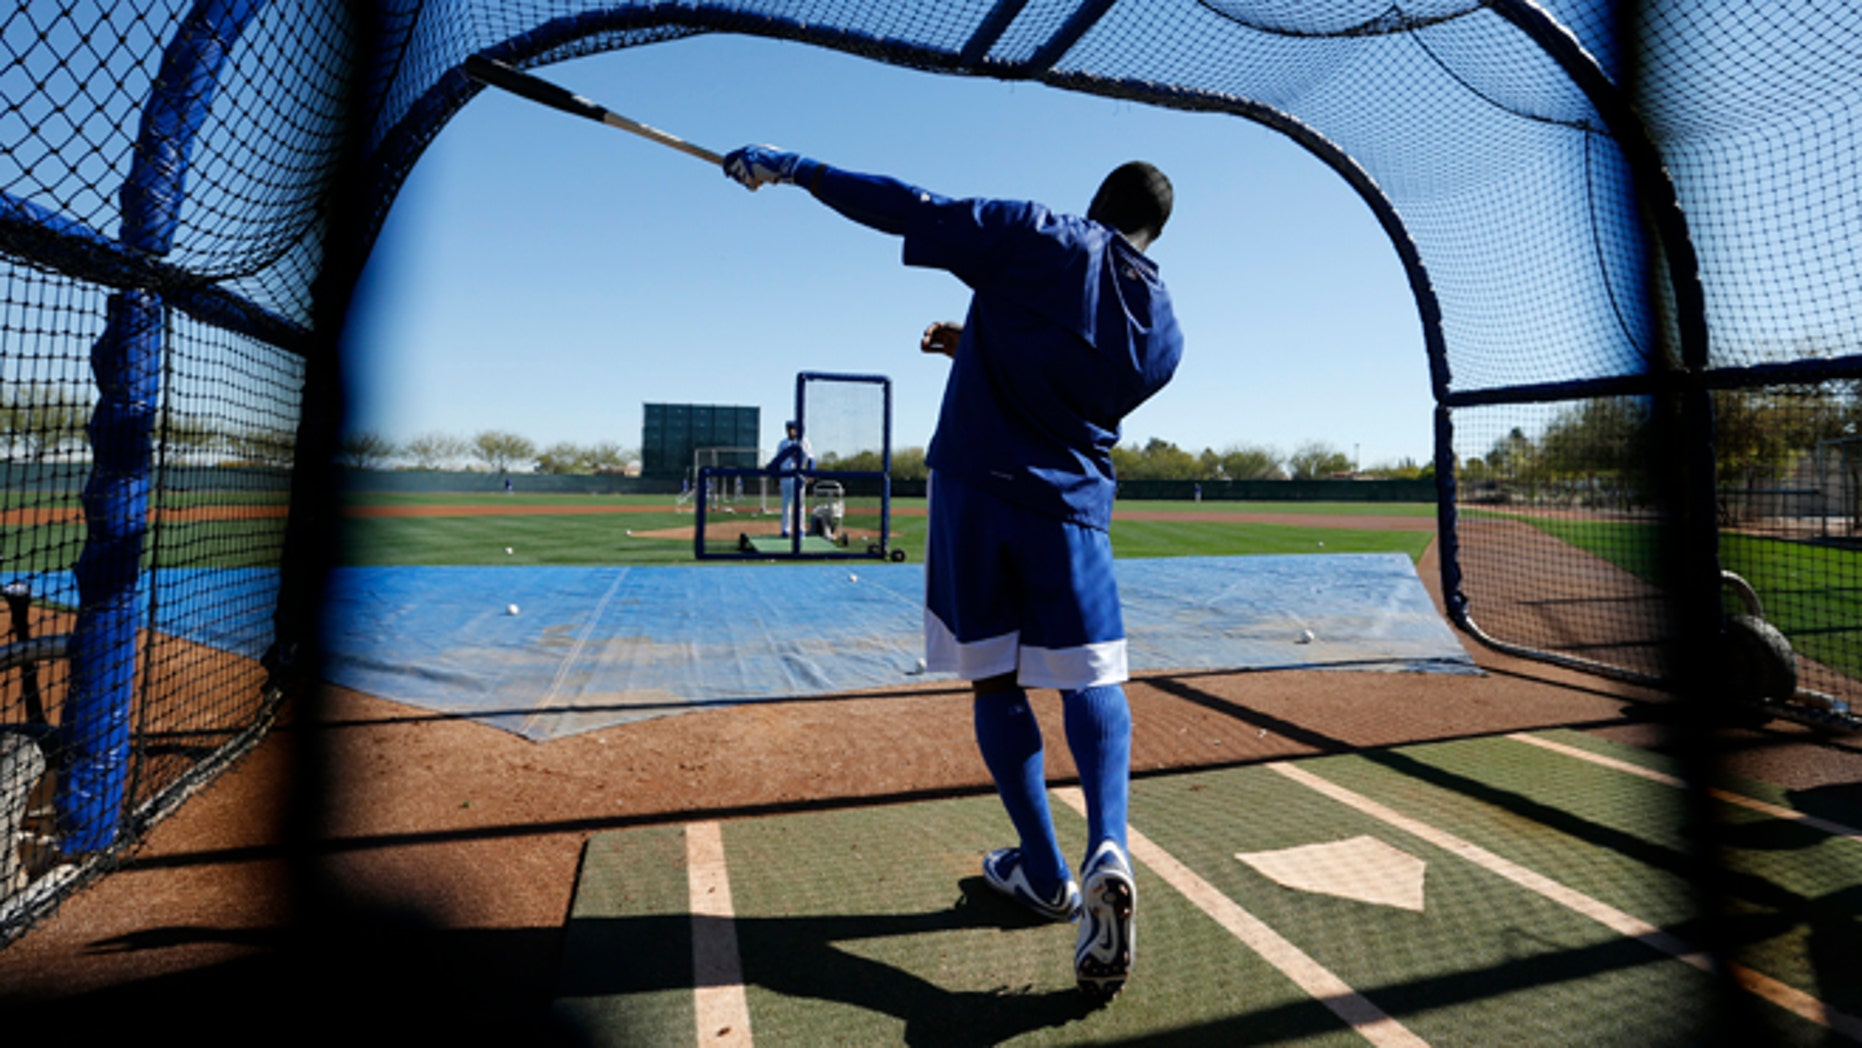 Los Angeles Dodgers' Yasiel Puig points out his shot after hitting a ball during a spring training baseball workout Wednesday, Feb. 25, 2015, in Phoenix. (AP Photo/John Locher)